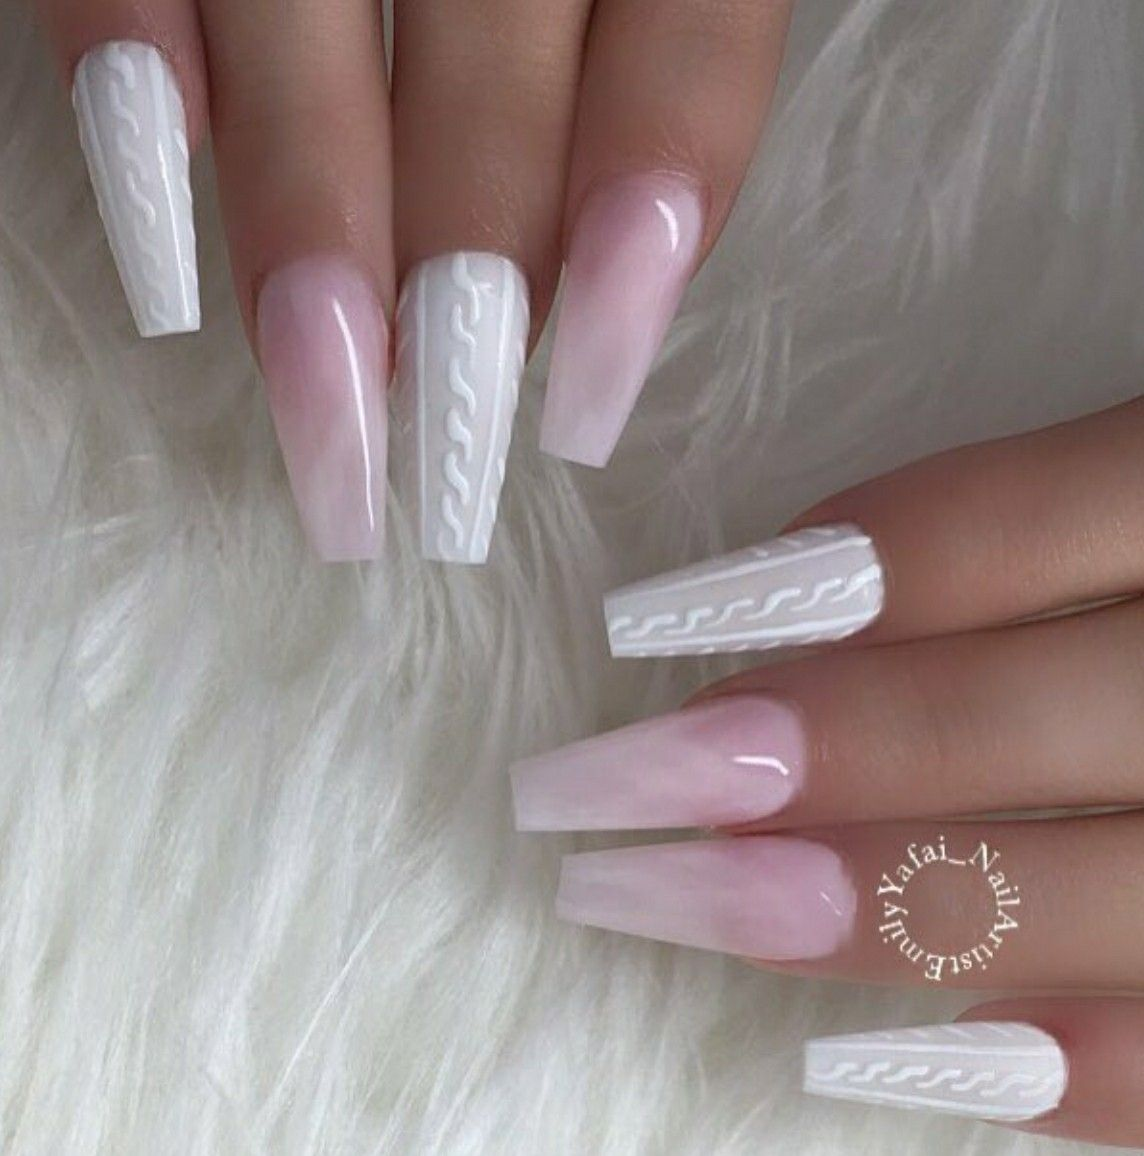 Ballerina Nails Sweater Nails Pink And White Nails Quartz Nails Acrylic Nails Gel Nails Sweater Nails Quartz Nail Ballerina Nails